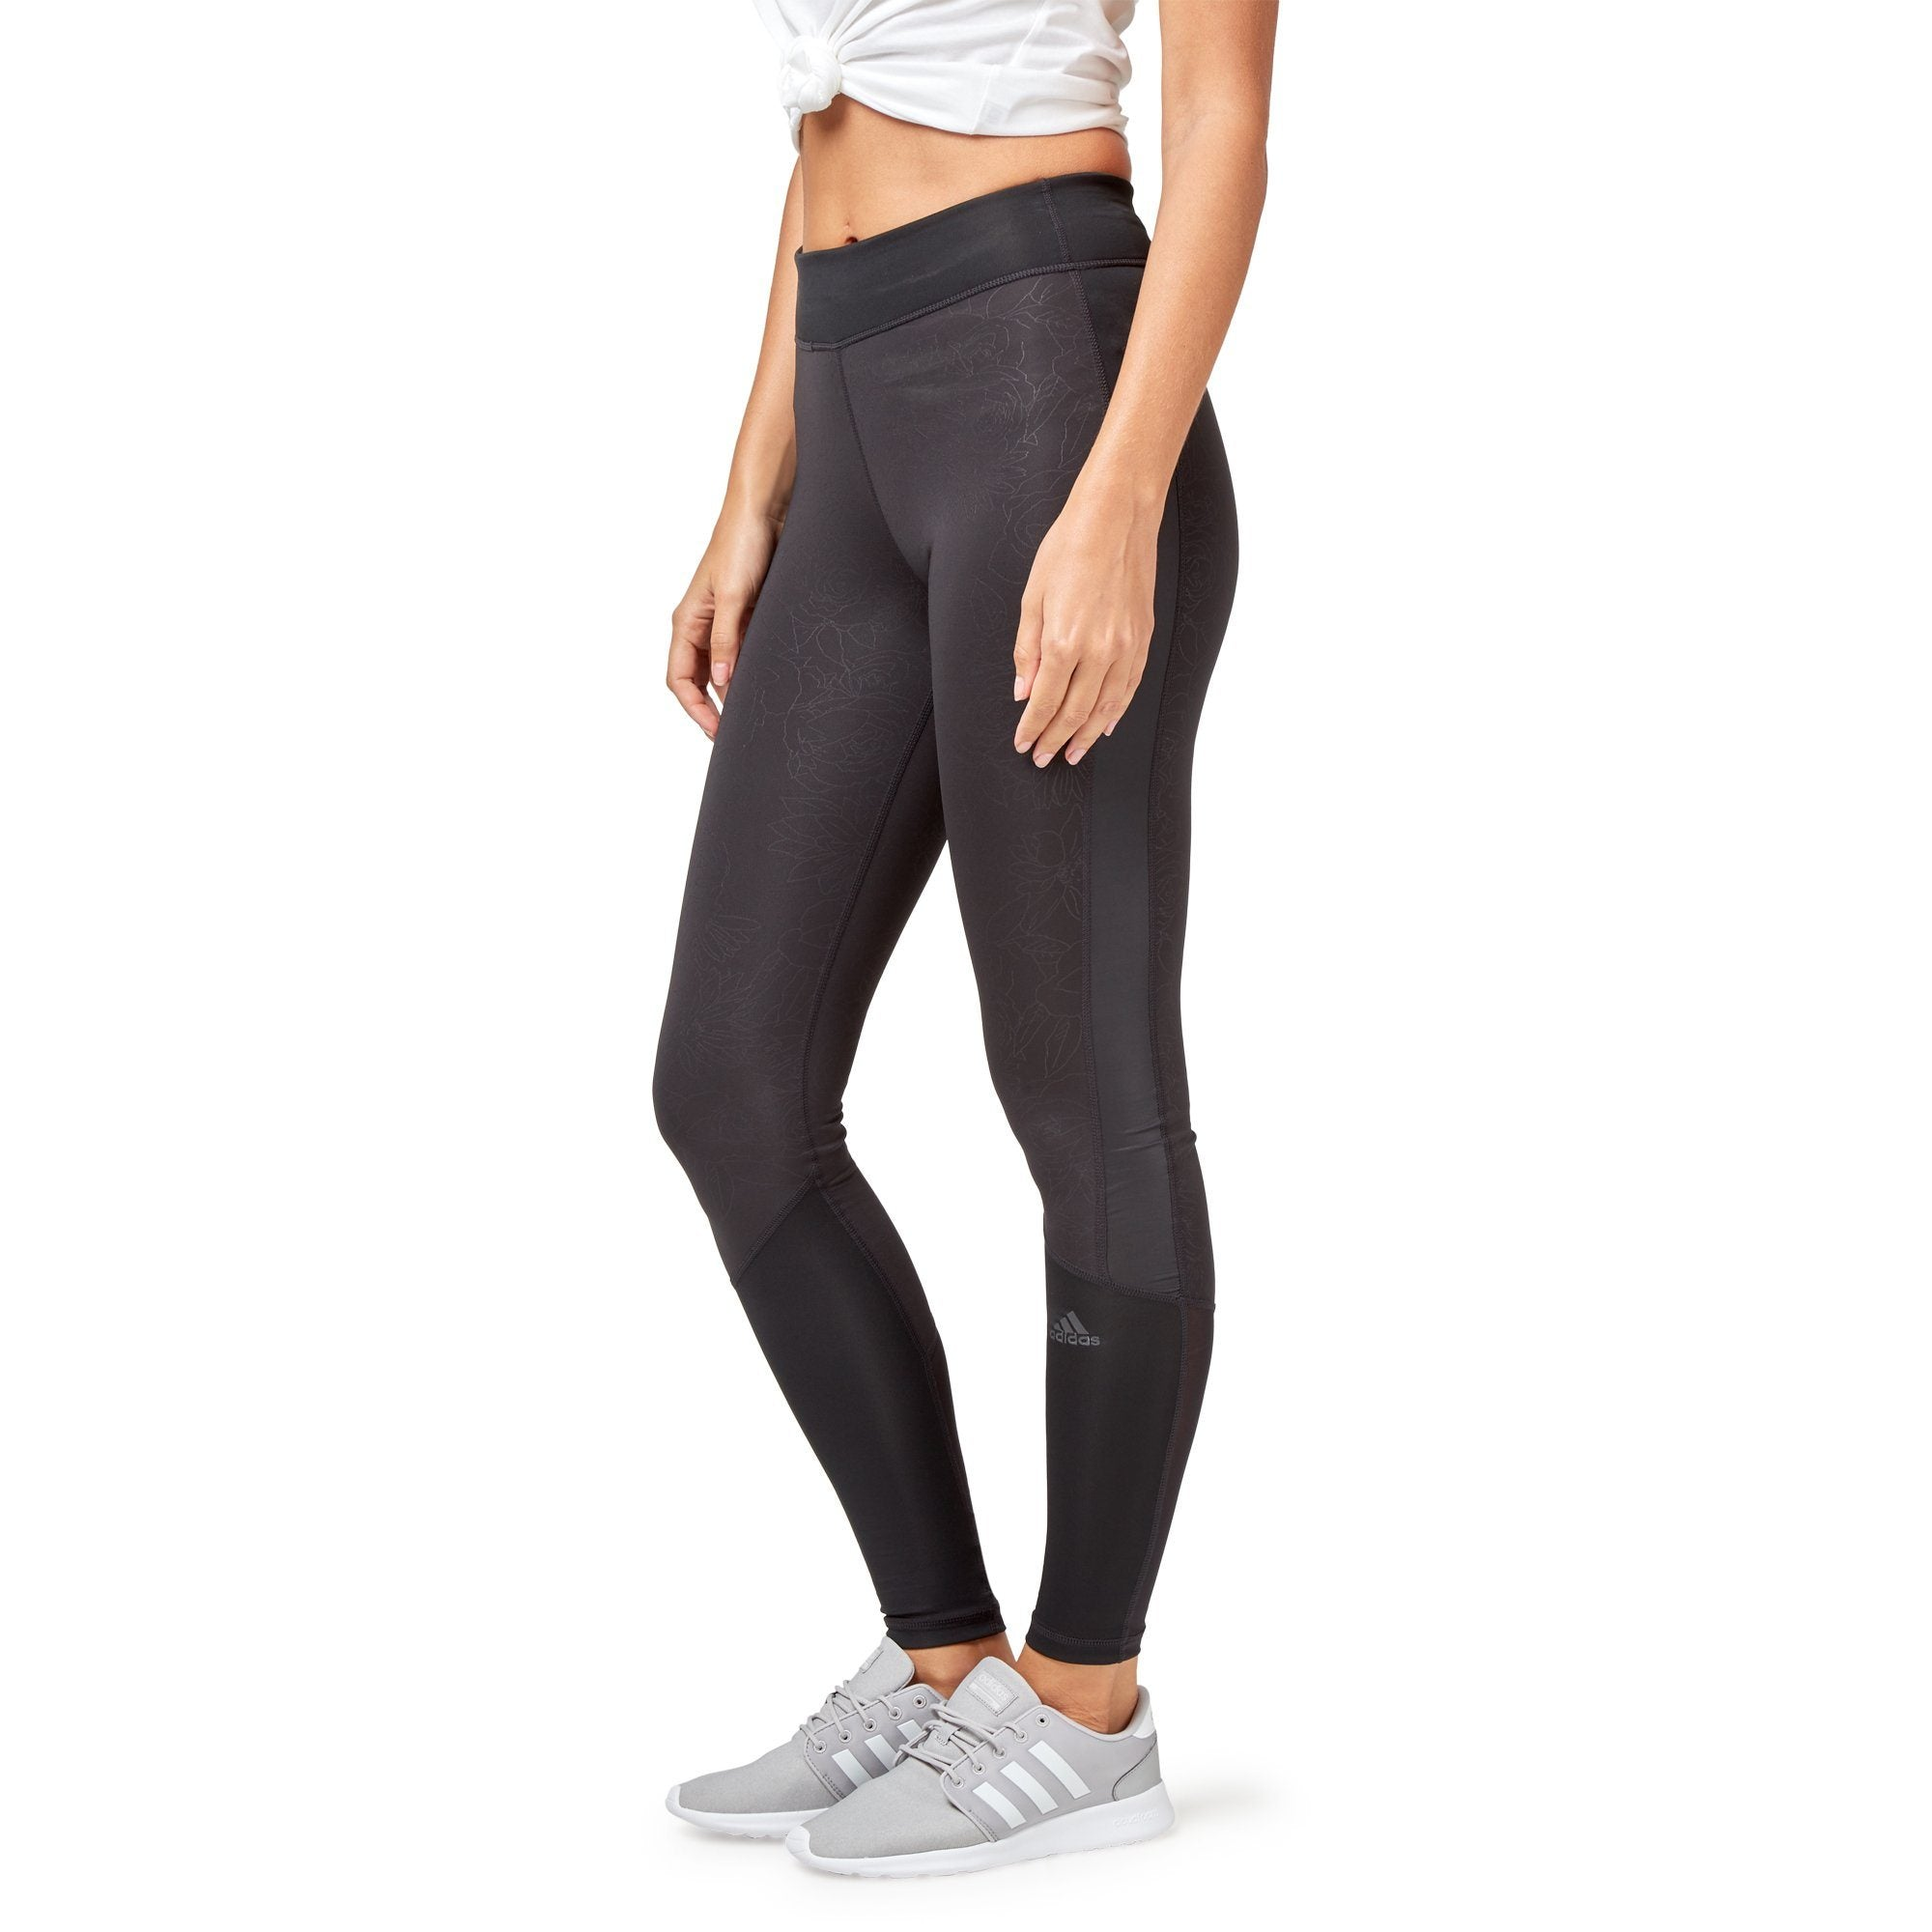 Adidas Women's Designed-2-Move Tights - Black/print SportsPower Geelong